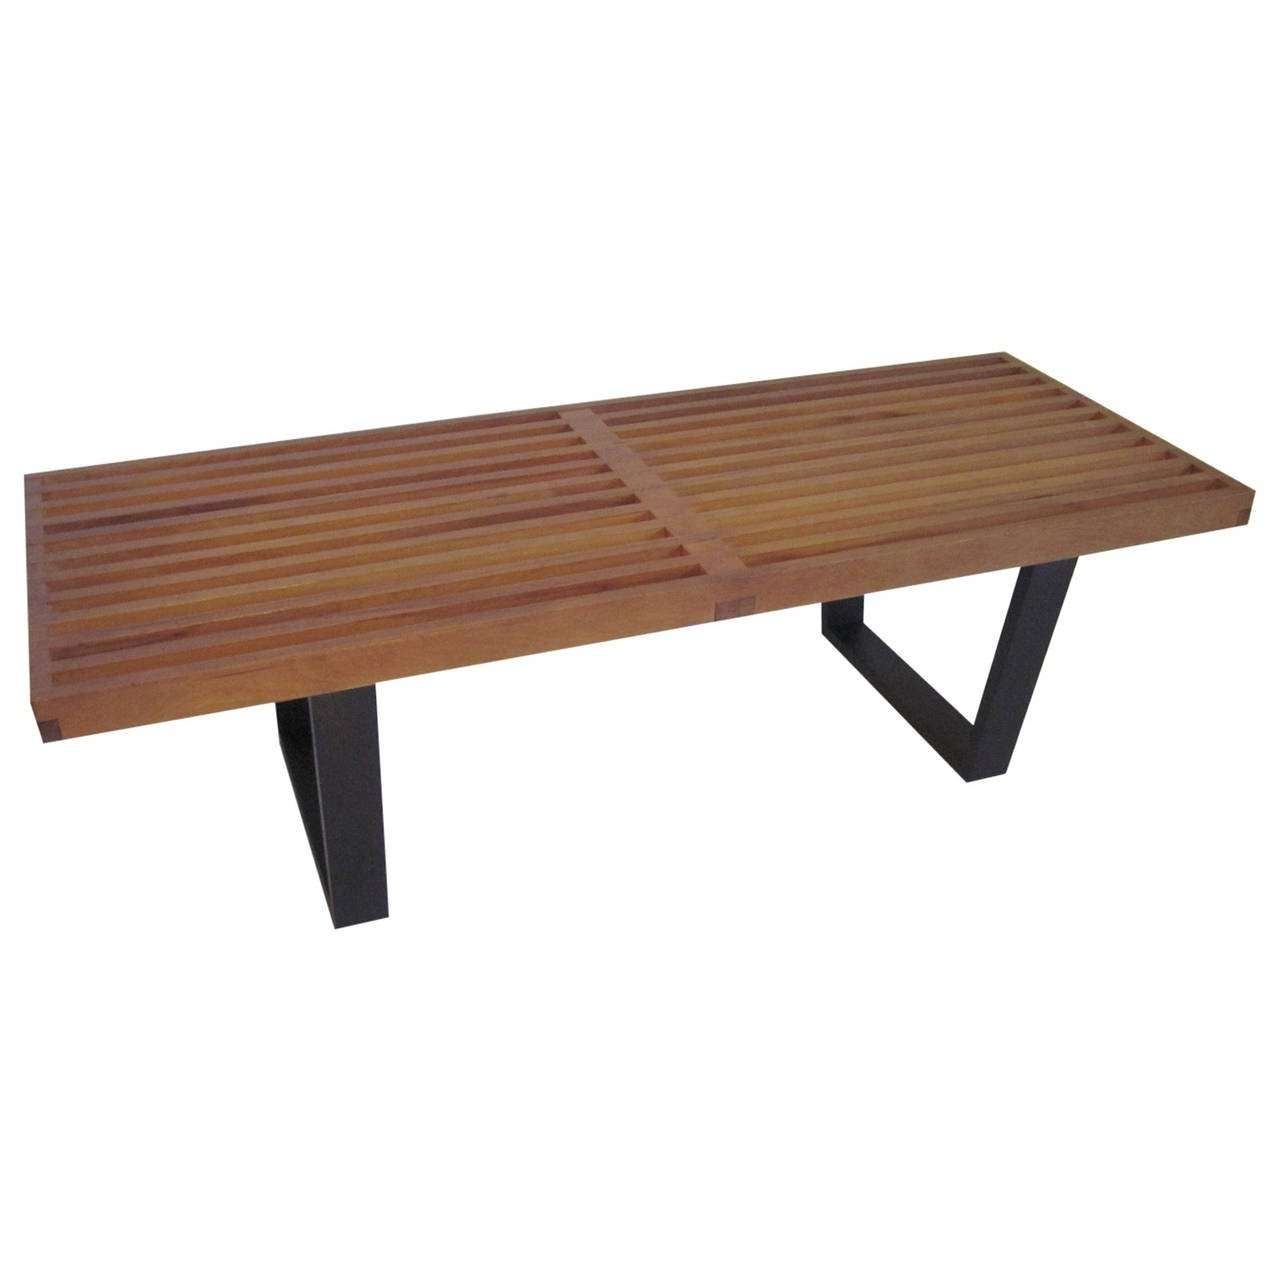 George Nelson Slat Bench Or Coffee Table At 1stdibs For Fashionable Nelson Coffee Tables (View 2 of 20)